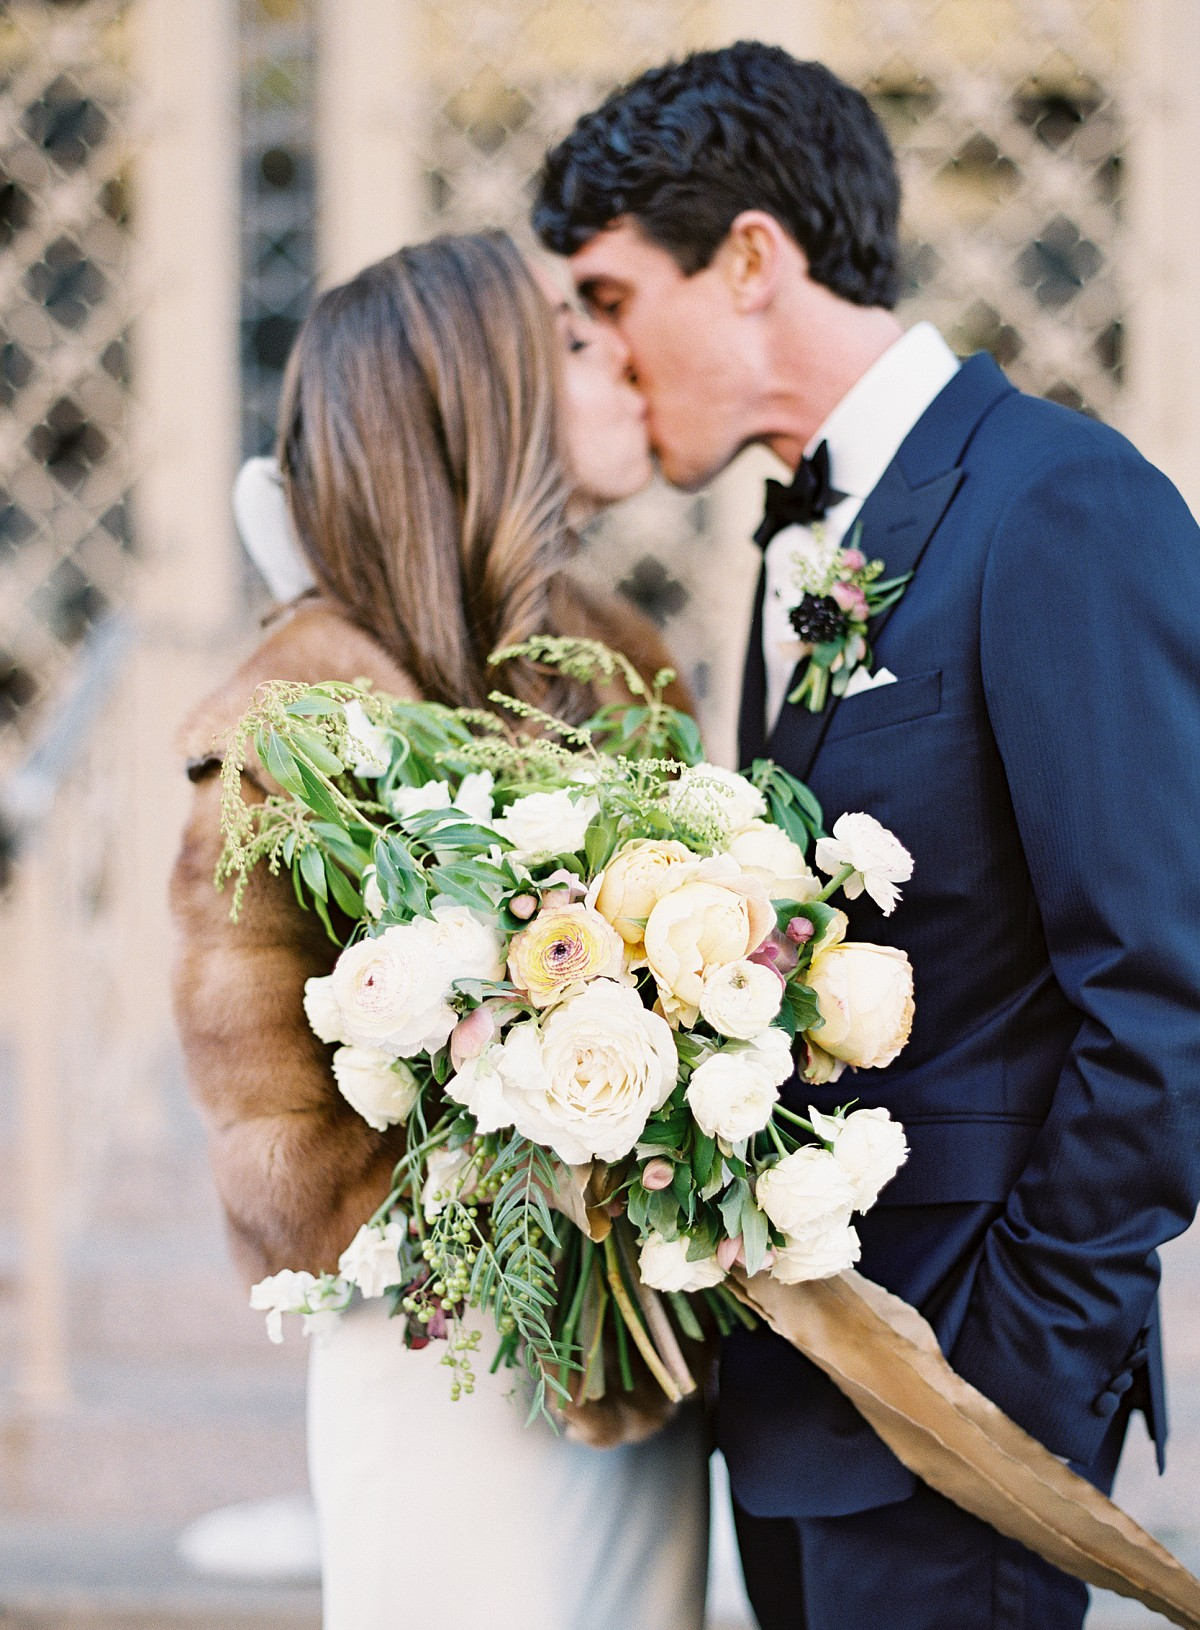 Urban Real Wedding with Rich Tones